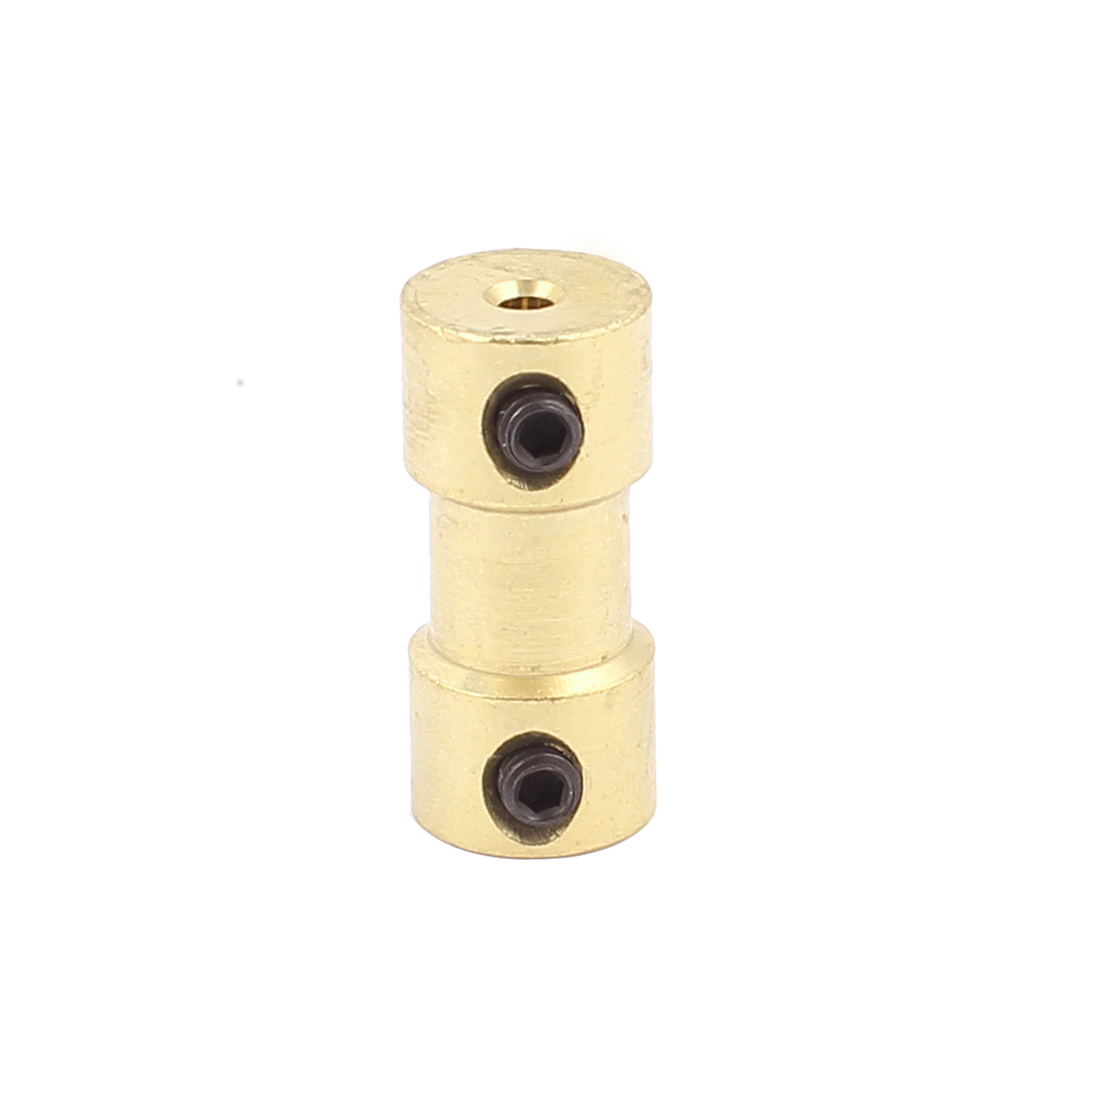 3.17mm to 2mm Copper DIY Motor Shaft Coupling Joint Connector for Electric Car Toy